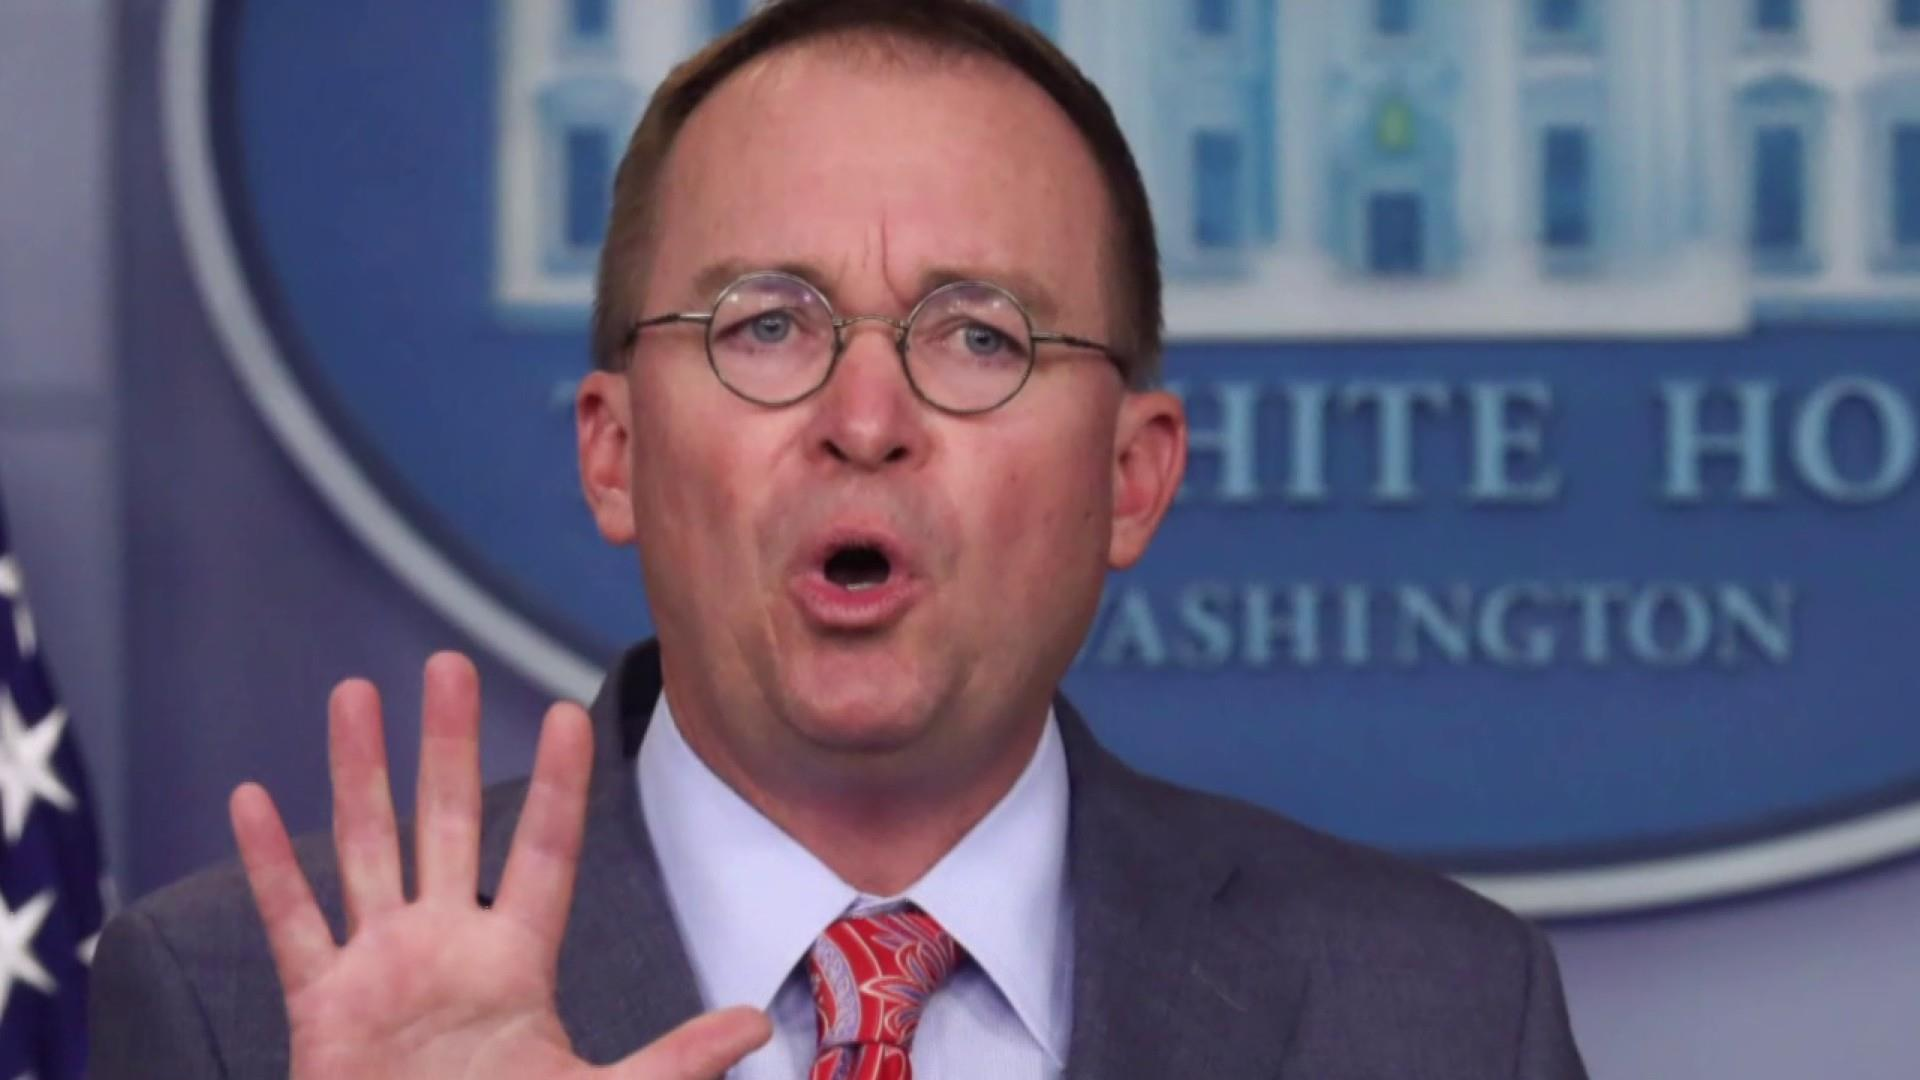 How much damage did Mick Mulvaney do yesterday?